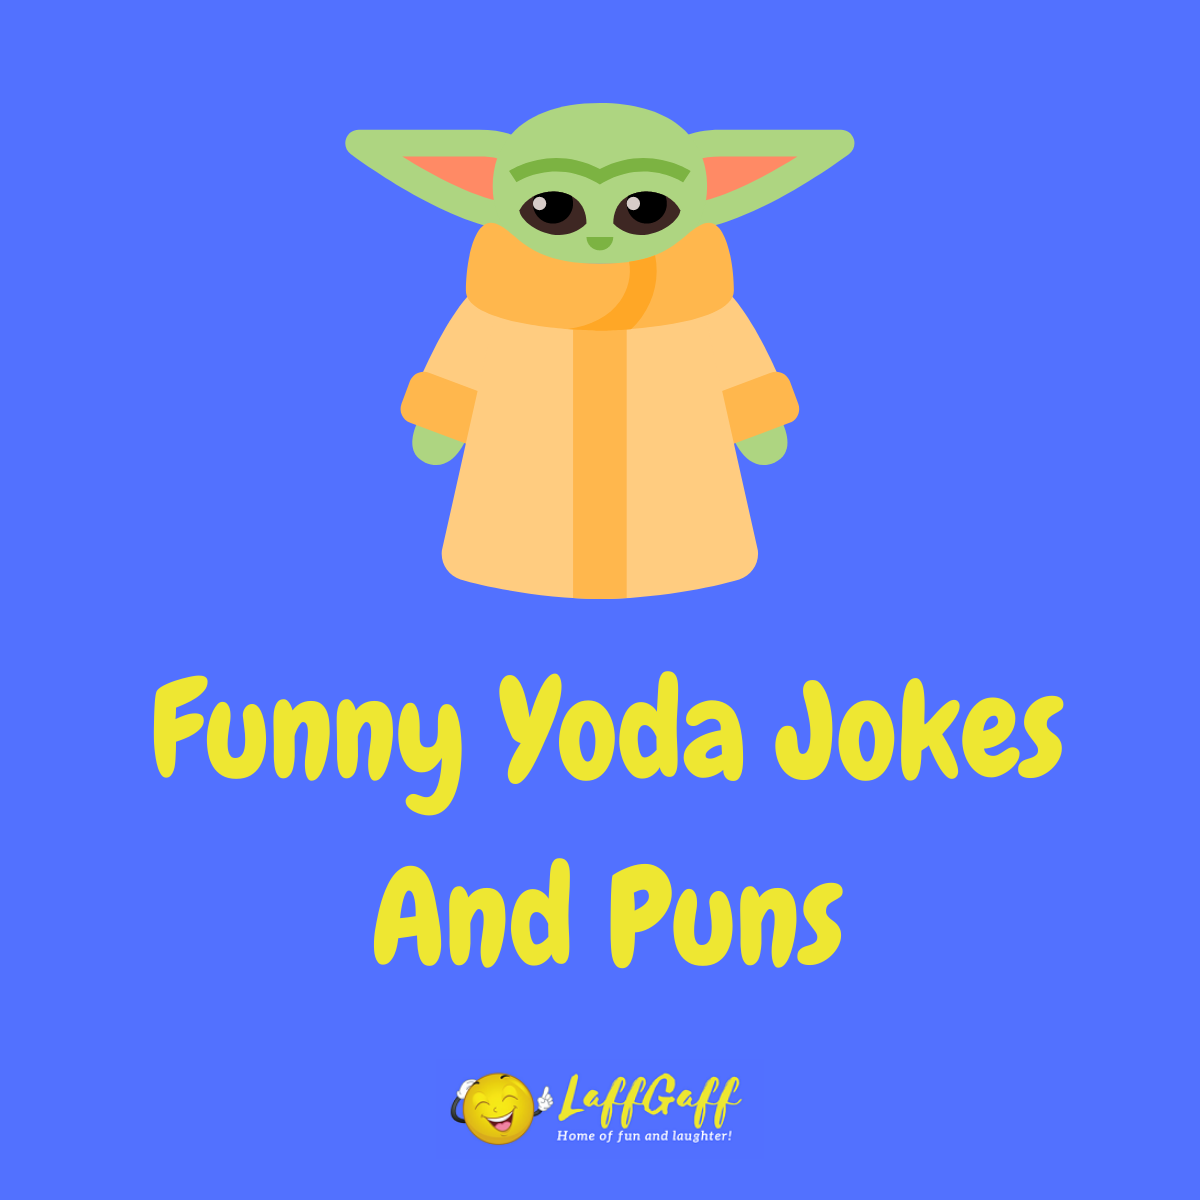 Featured image for a page of funny Yoda jokes and puns.